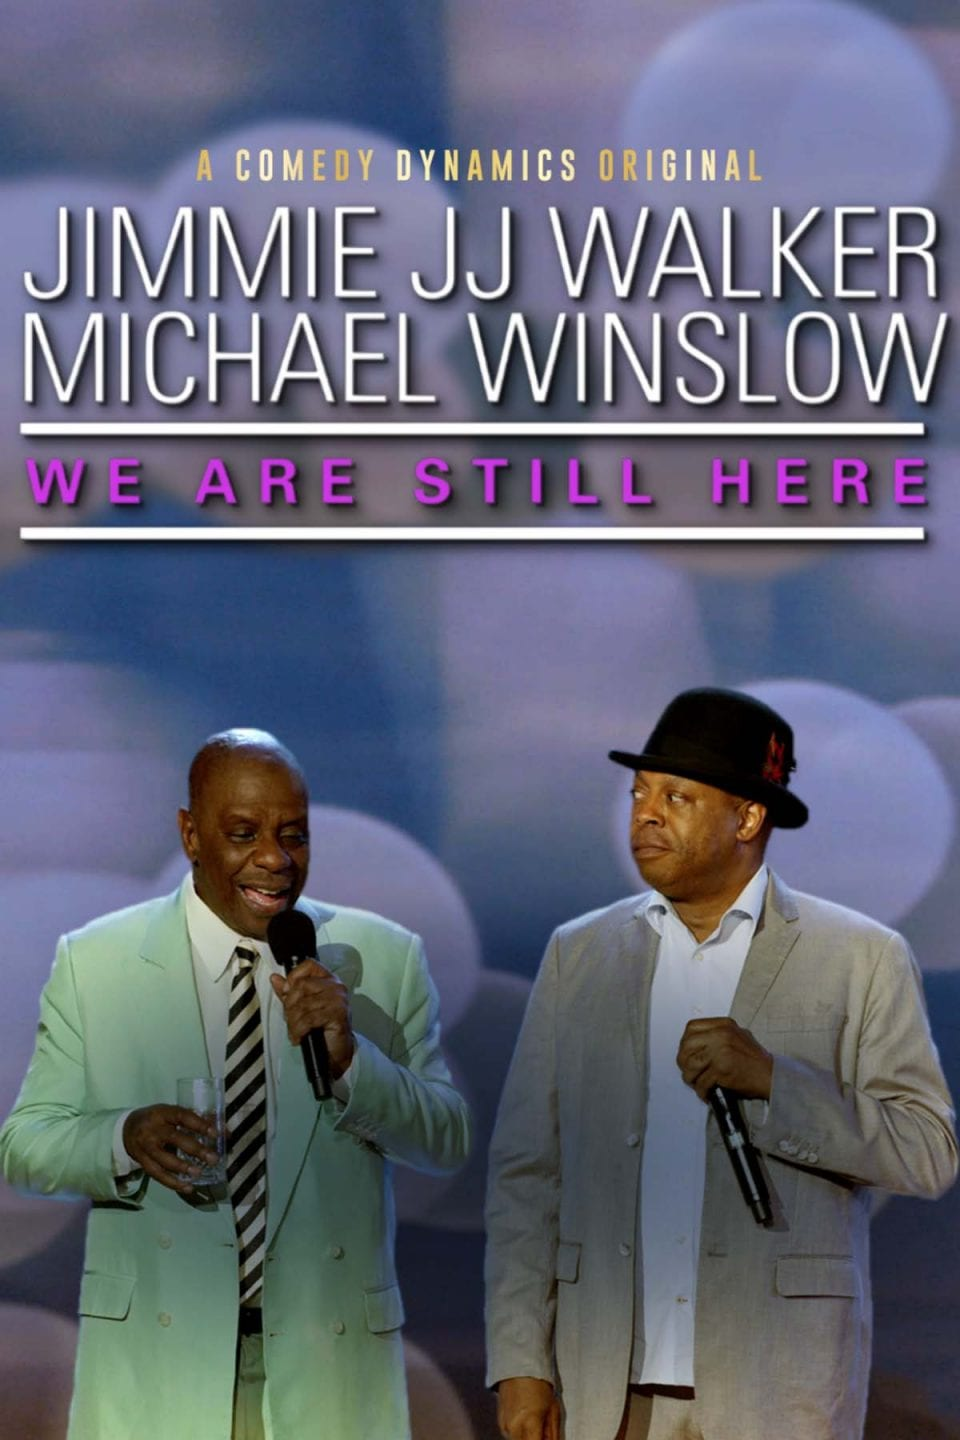 Jimmie JJ Walker Michael Winslow Premiere 2000X3000 ng 01